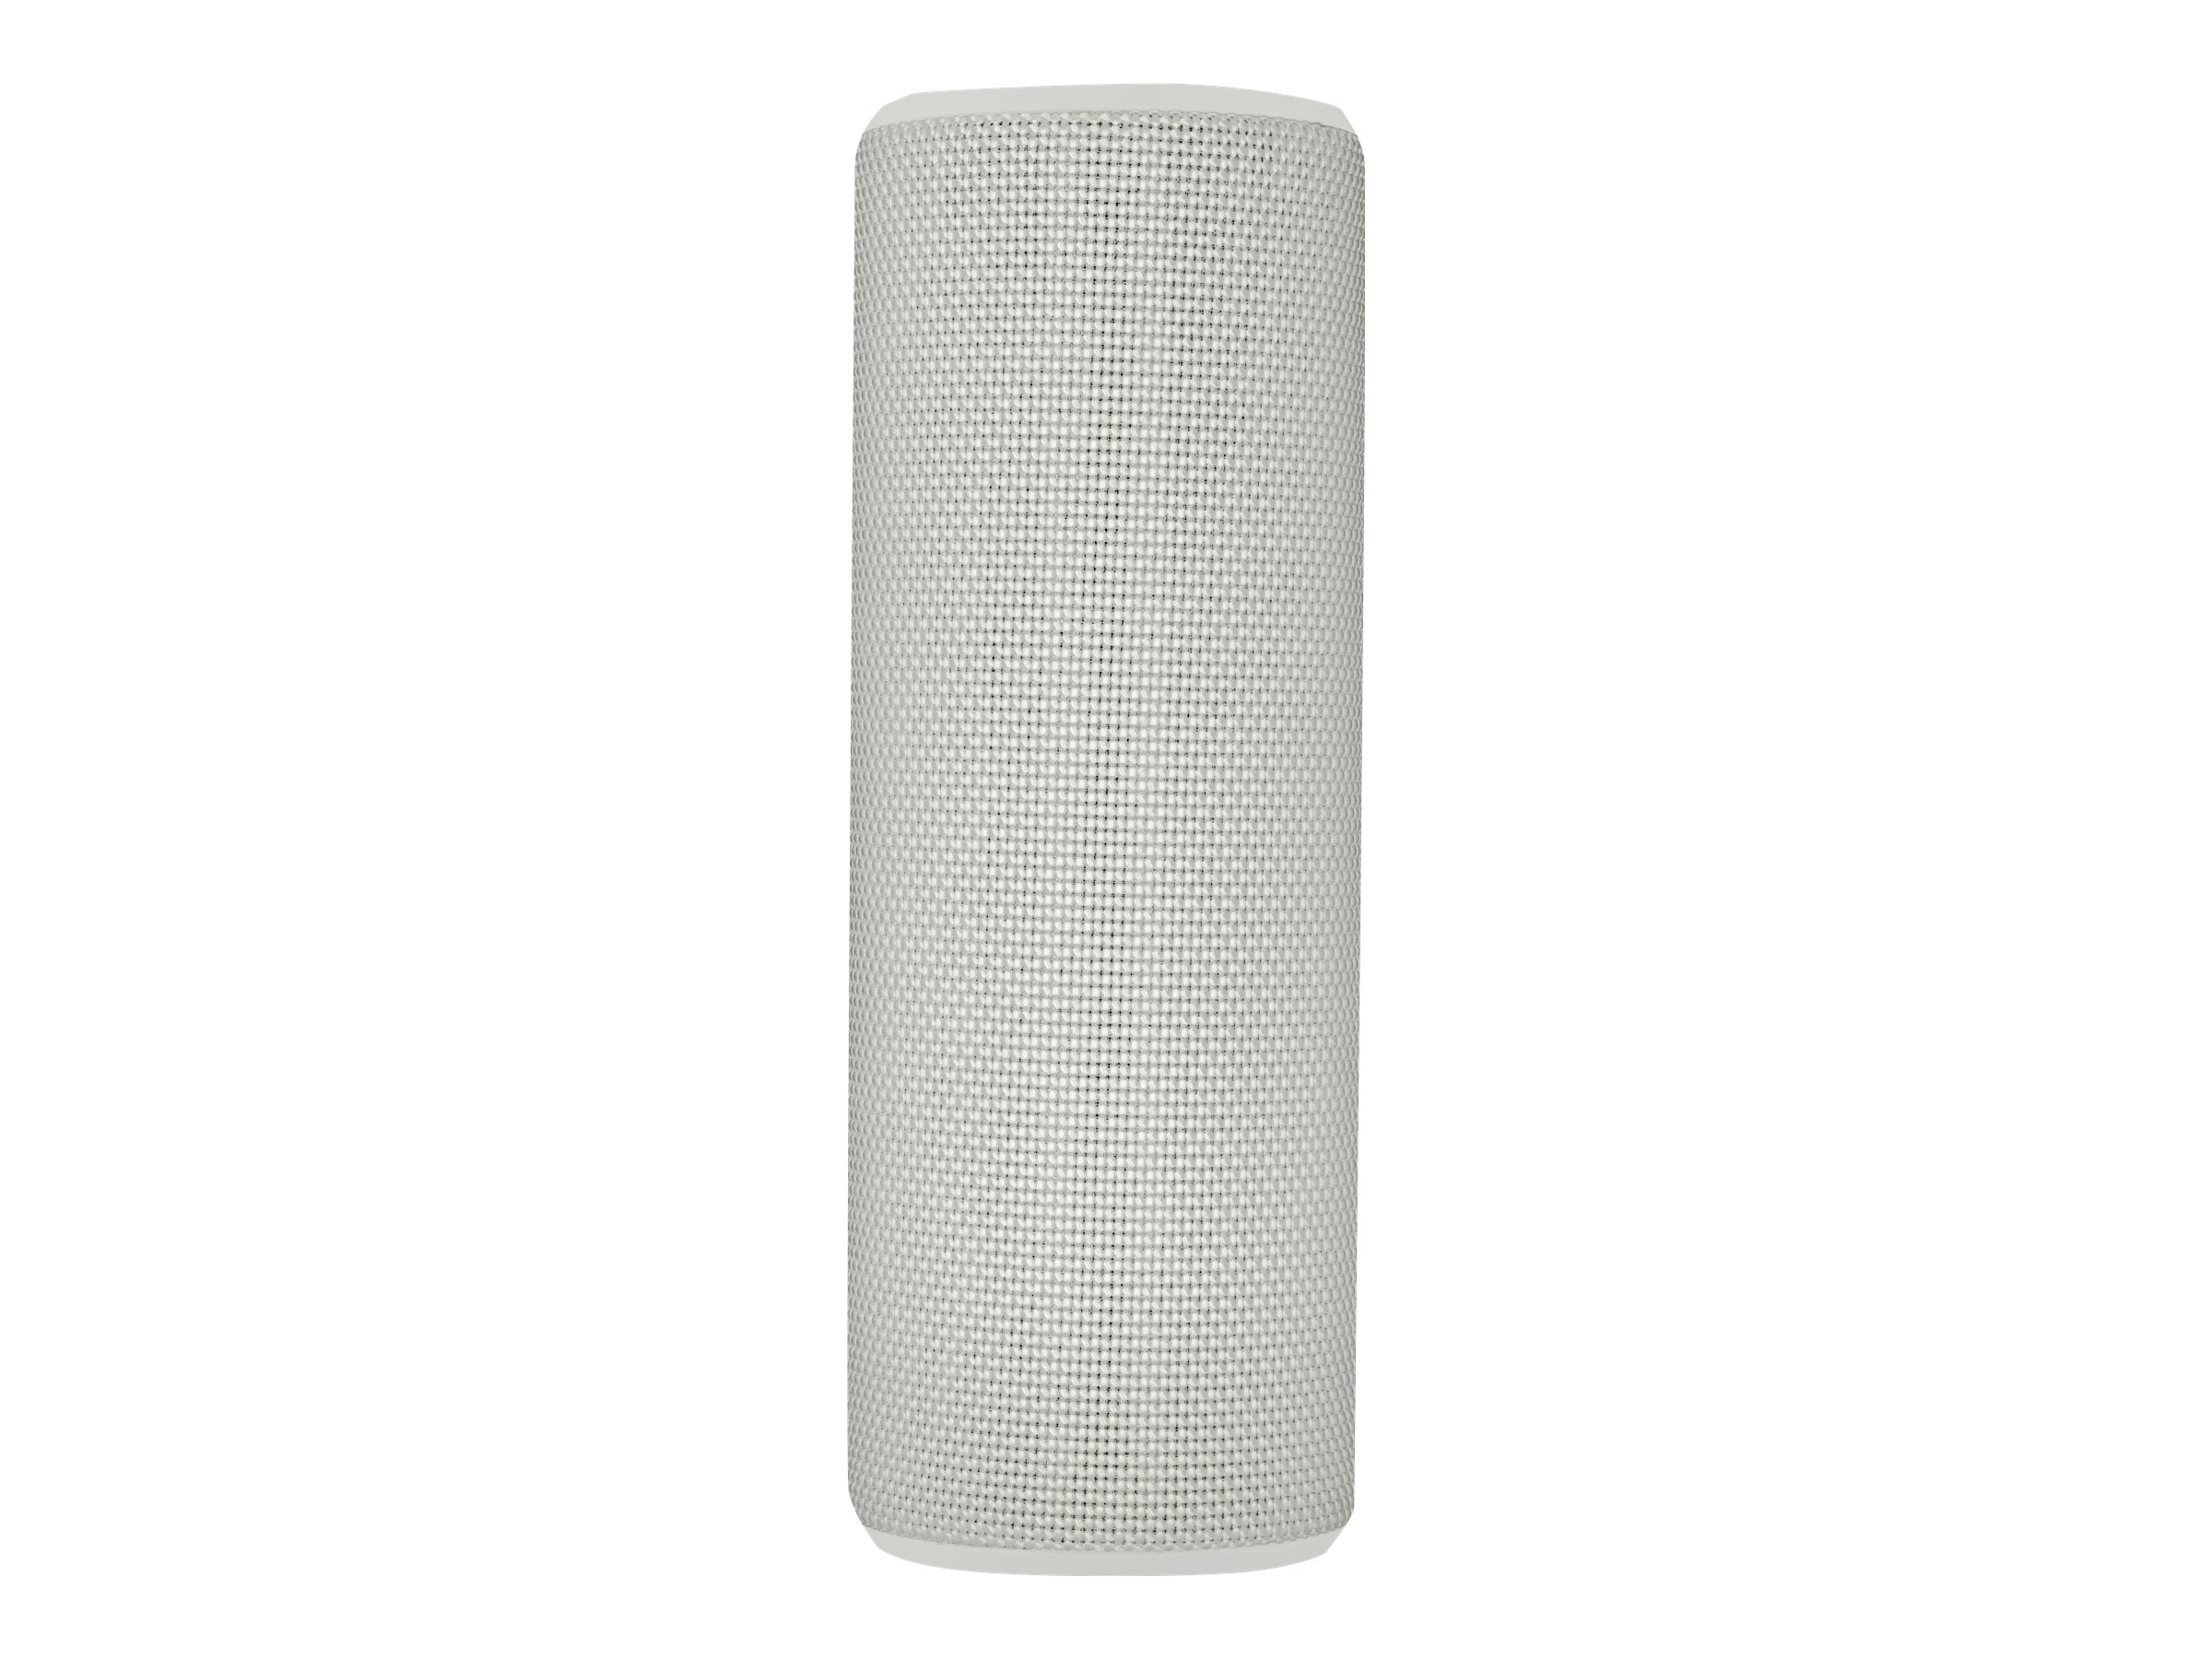 Logitech UE Boom 2 Wireless Speaker, Yeti, 984-000556